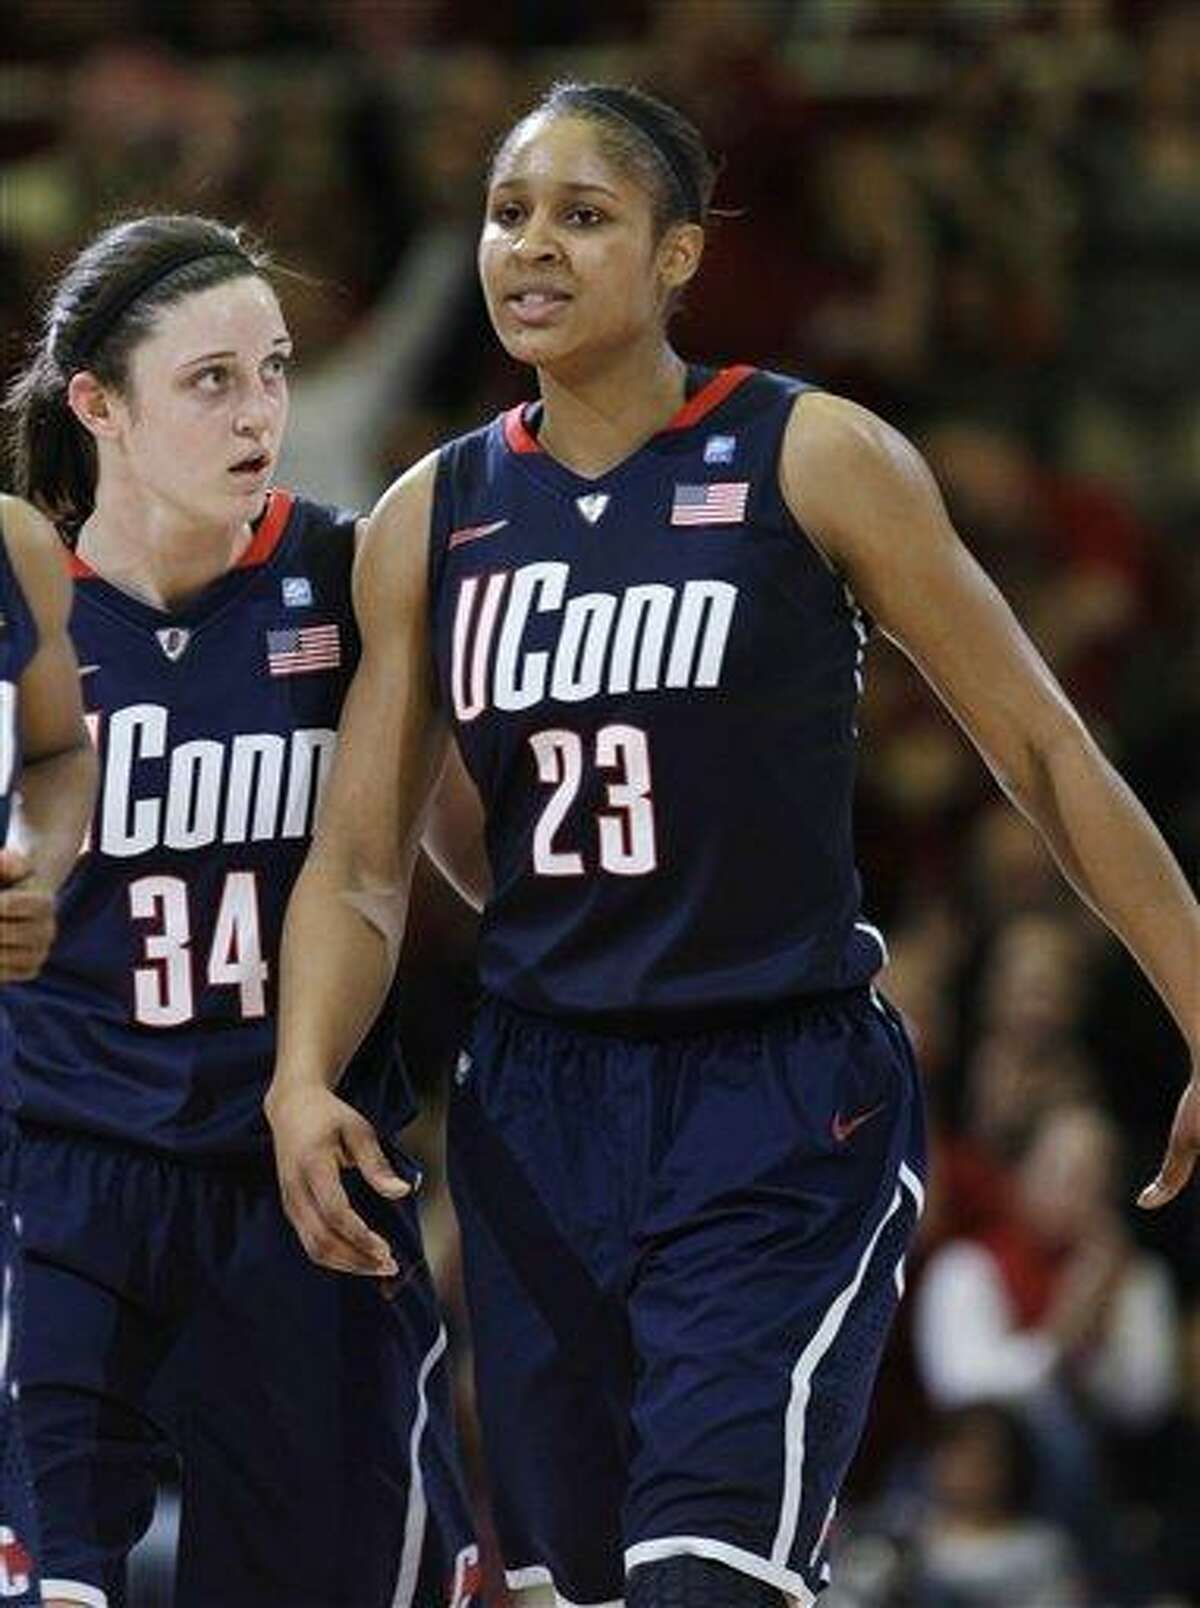 Connecticut forward Maya Moore (23) and guard Kelly Faris (34) walk to the bench in second half of an NCAA college basketball game against Stanford in Stanford, Calif., Thursday, Dec. 30, 2010. Stanford won 71-59, ending Connecticut's 90-game winning streak. (AP Photo/Paul Sakuma)